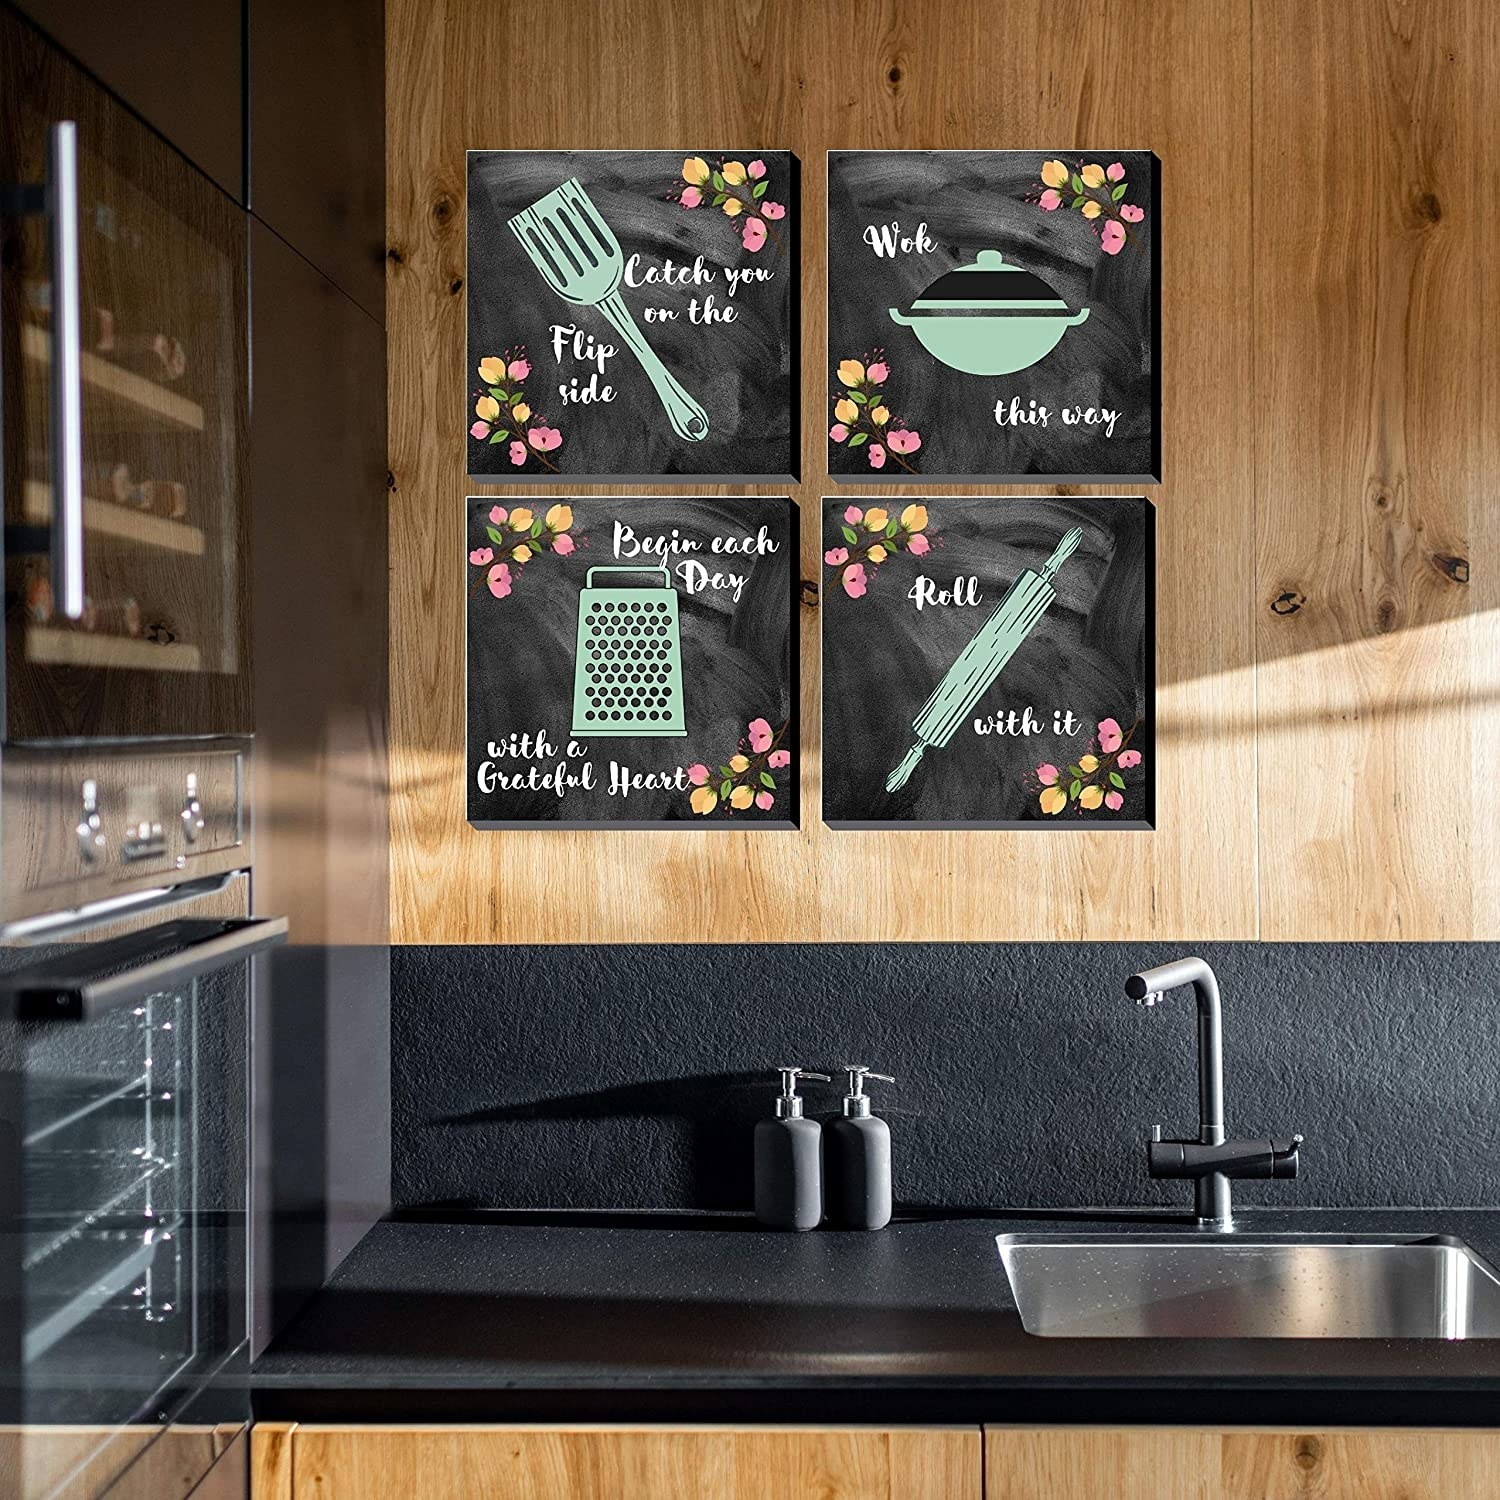 A set of 4 wooden wall paintings with kitchen quotes and utensils painted on them